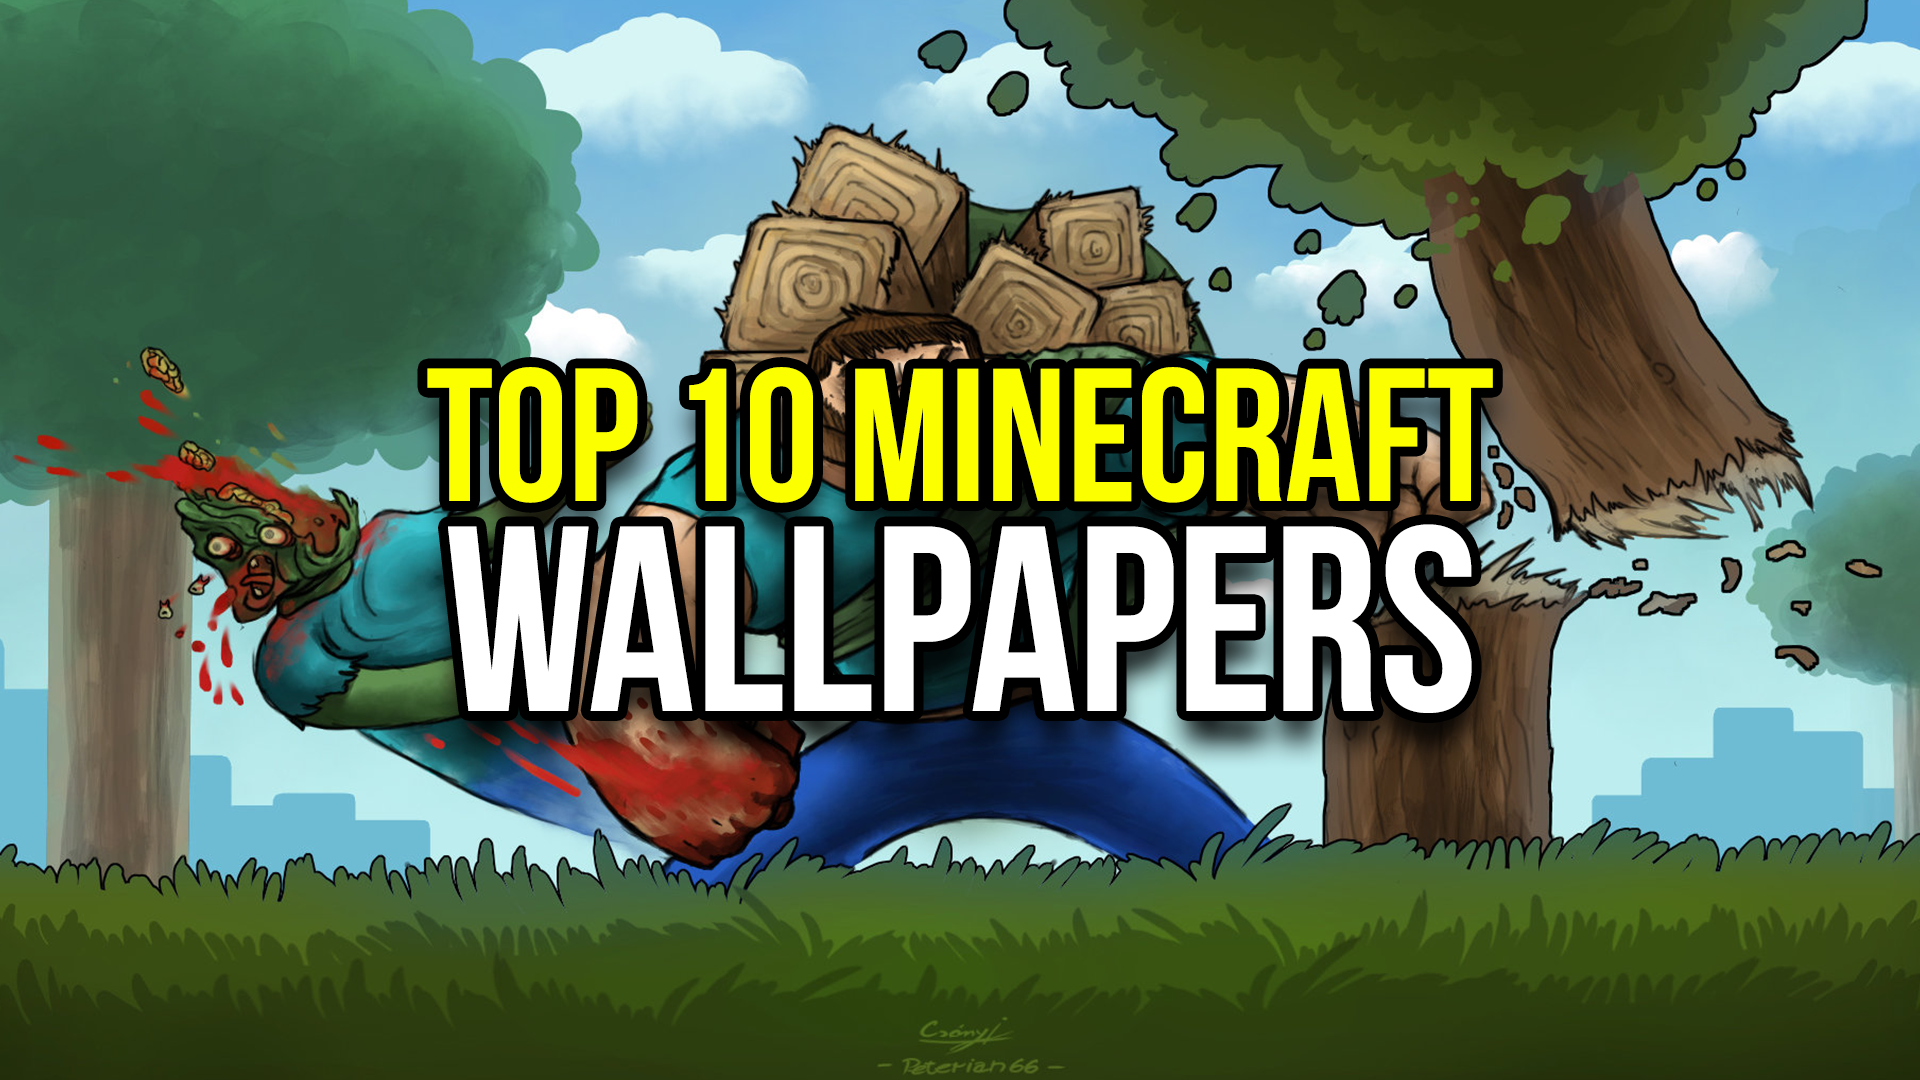 top 10 minecraft wallpapers - minecraftrocket